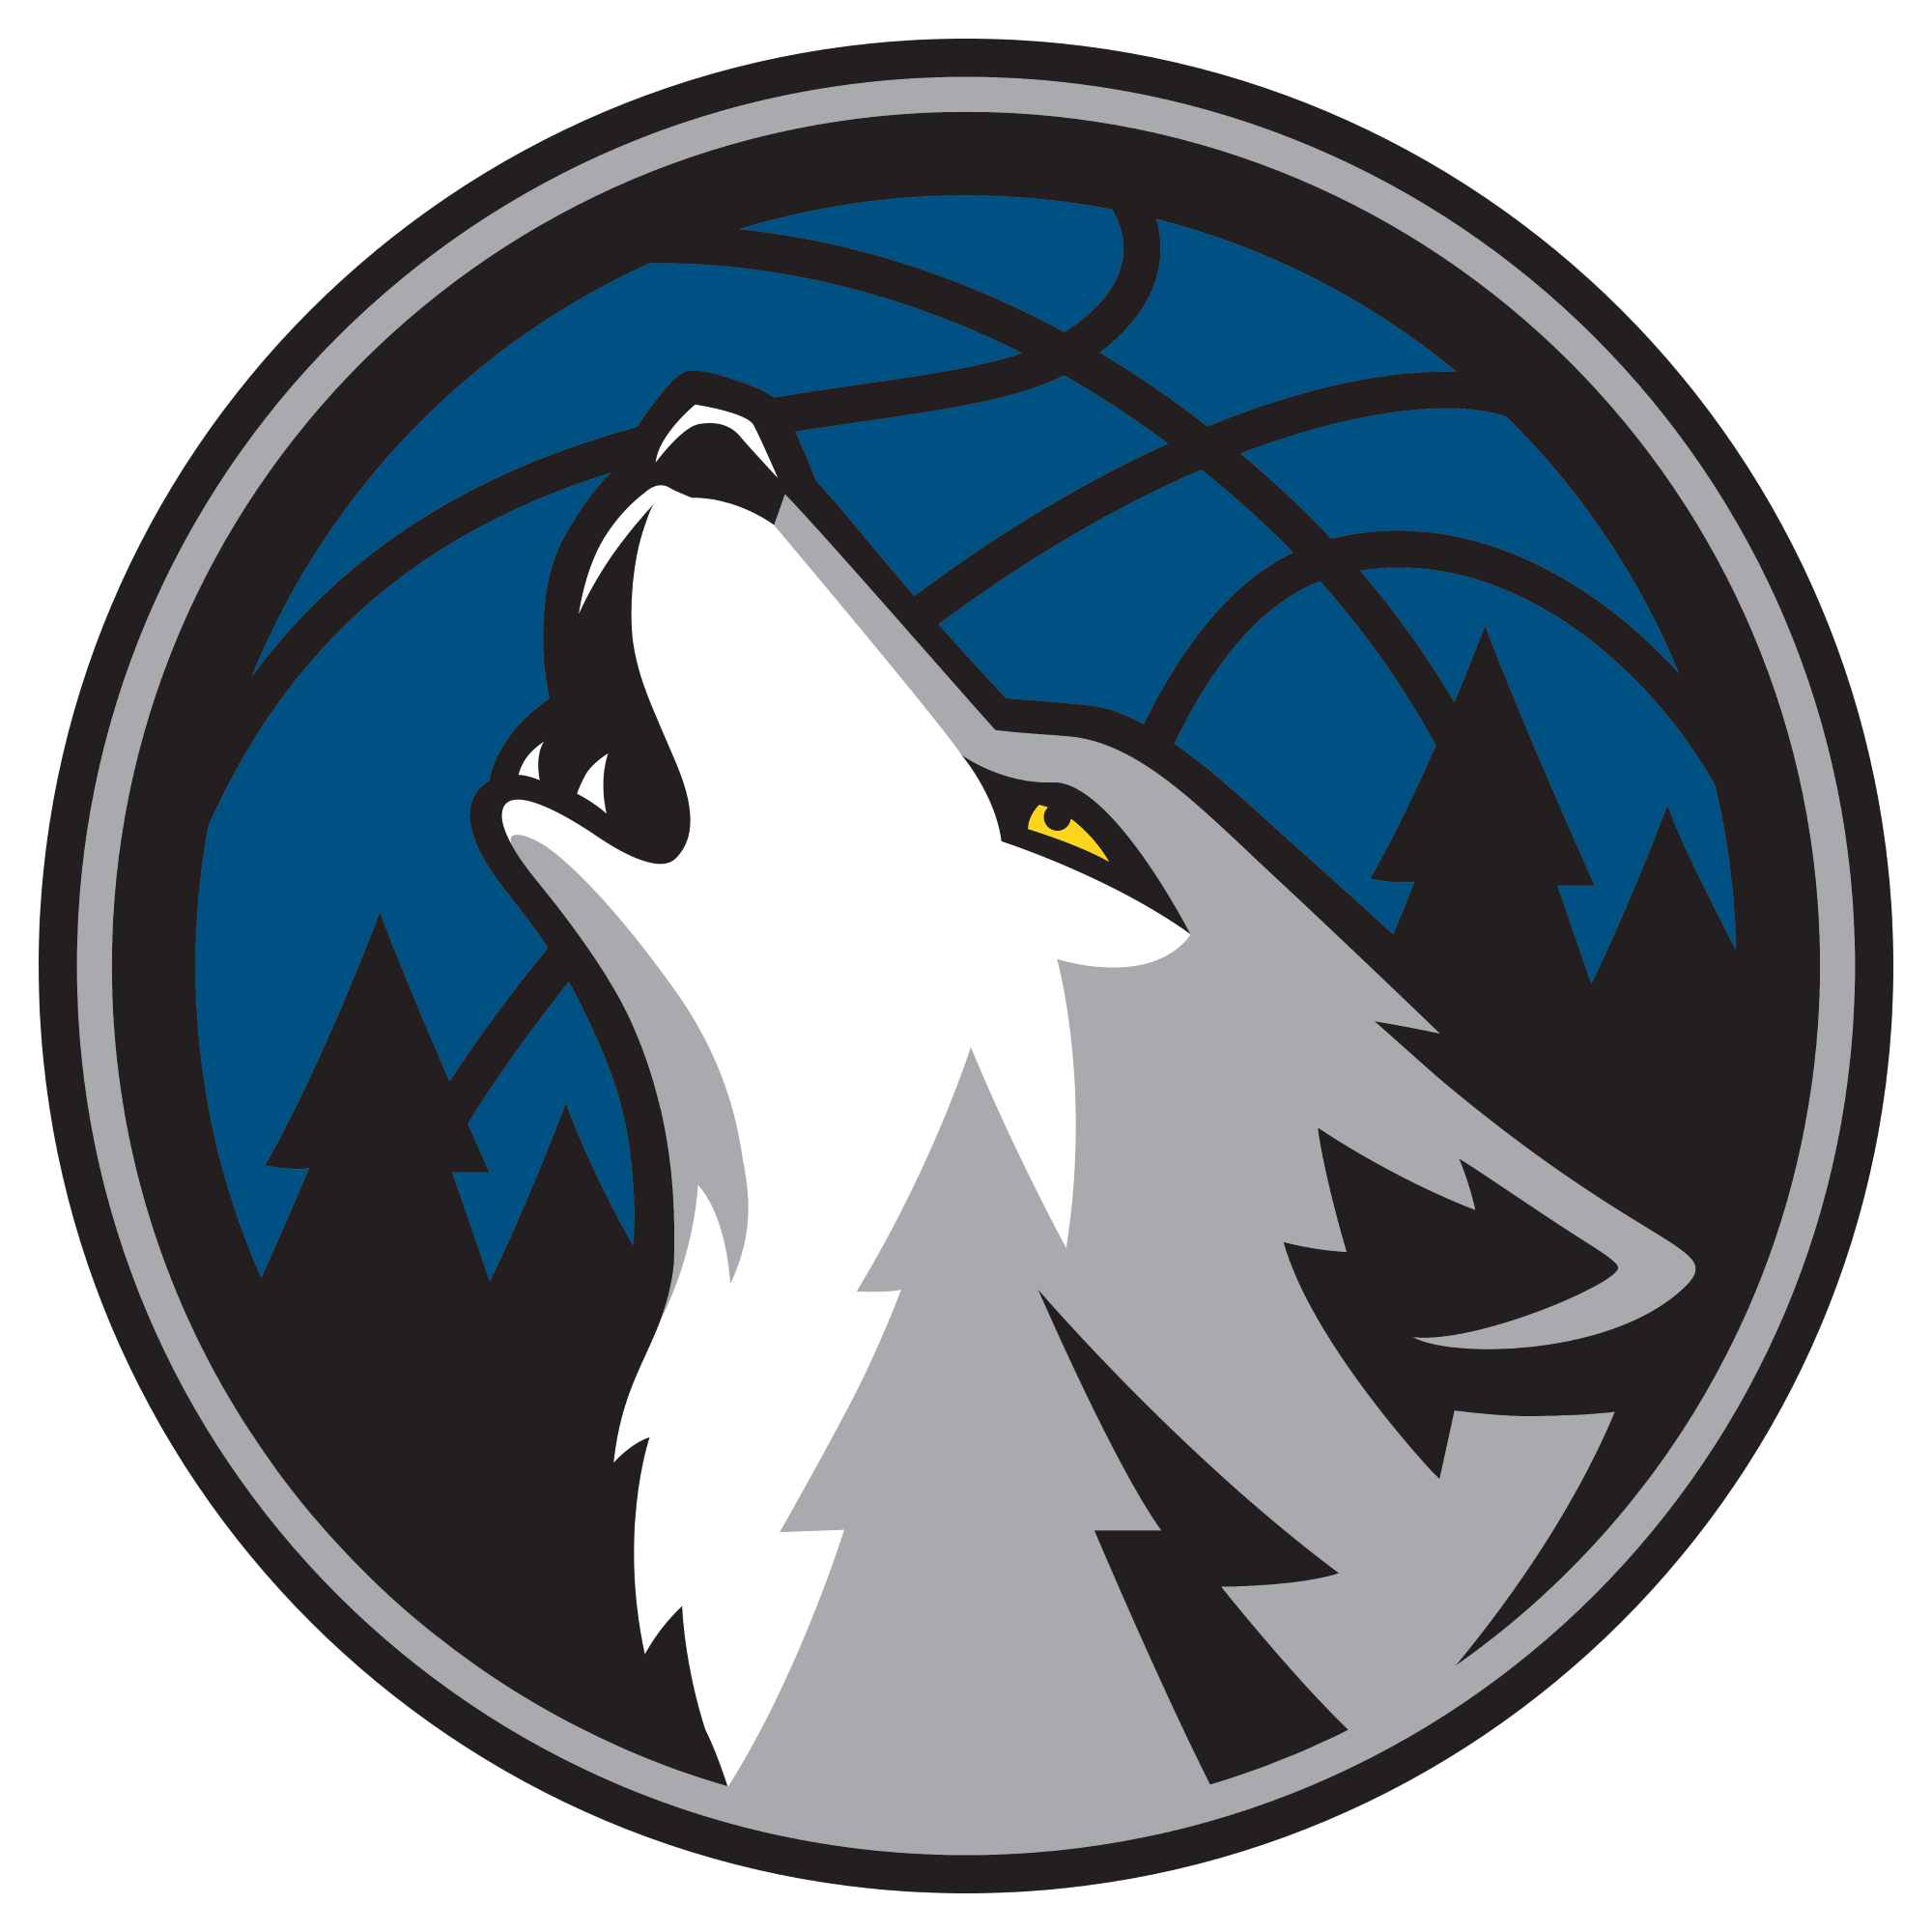 Minnesota timberwolves officially unveil. Clipart shield basketball